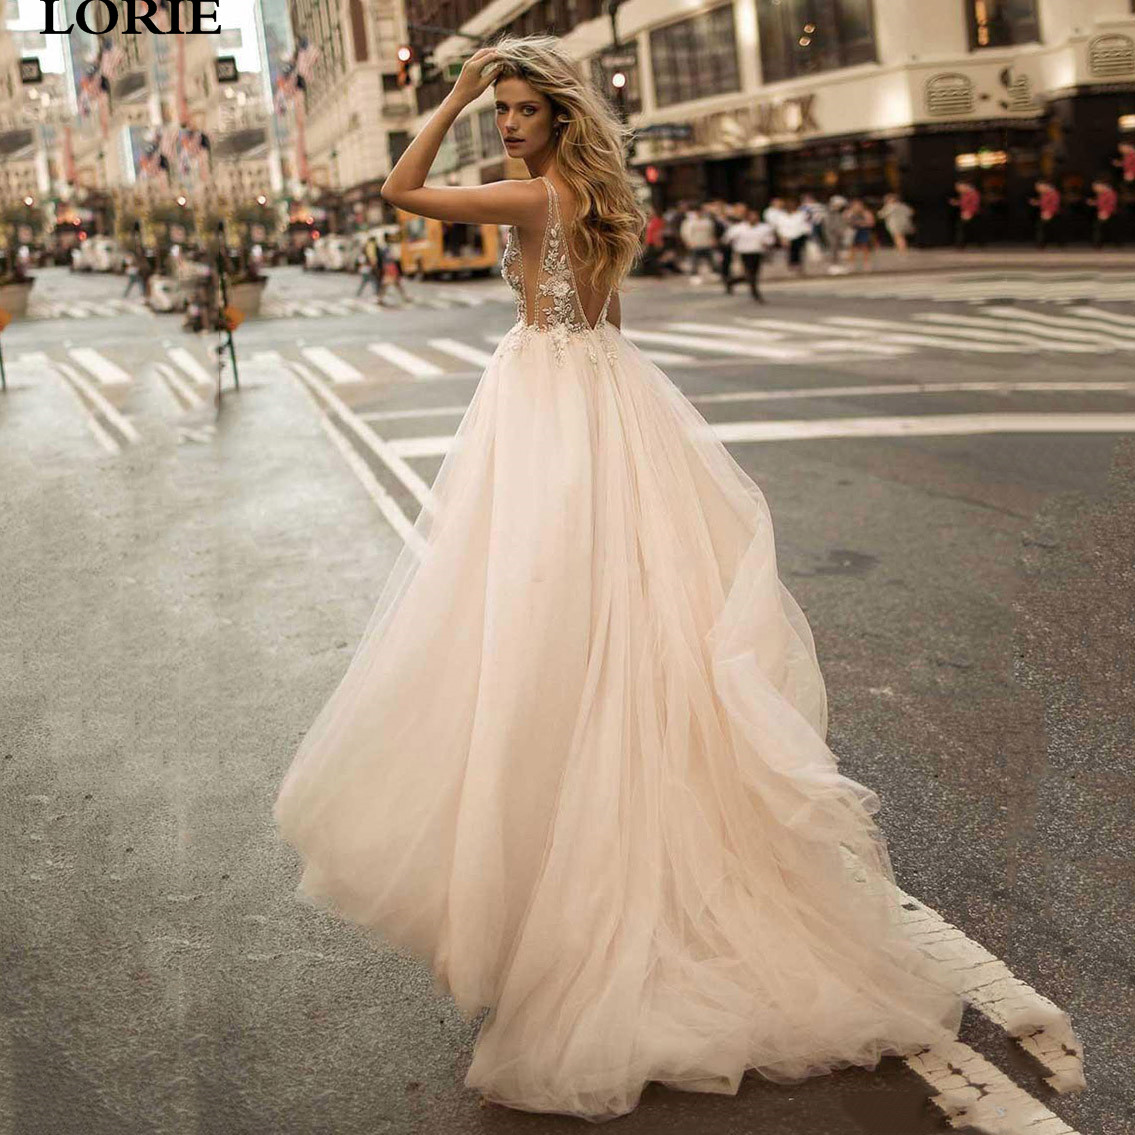 LORIE A Line Wedding Dress Sexy V Neck Bride Dress Lace Flowers Vestidos De Novia Backless Boho Bride Wedding Gowns